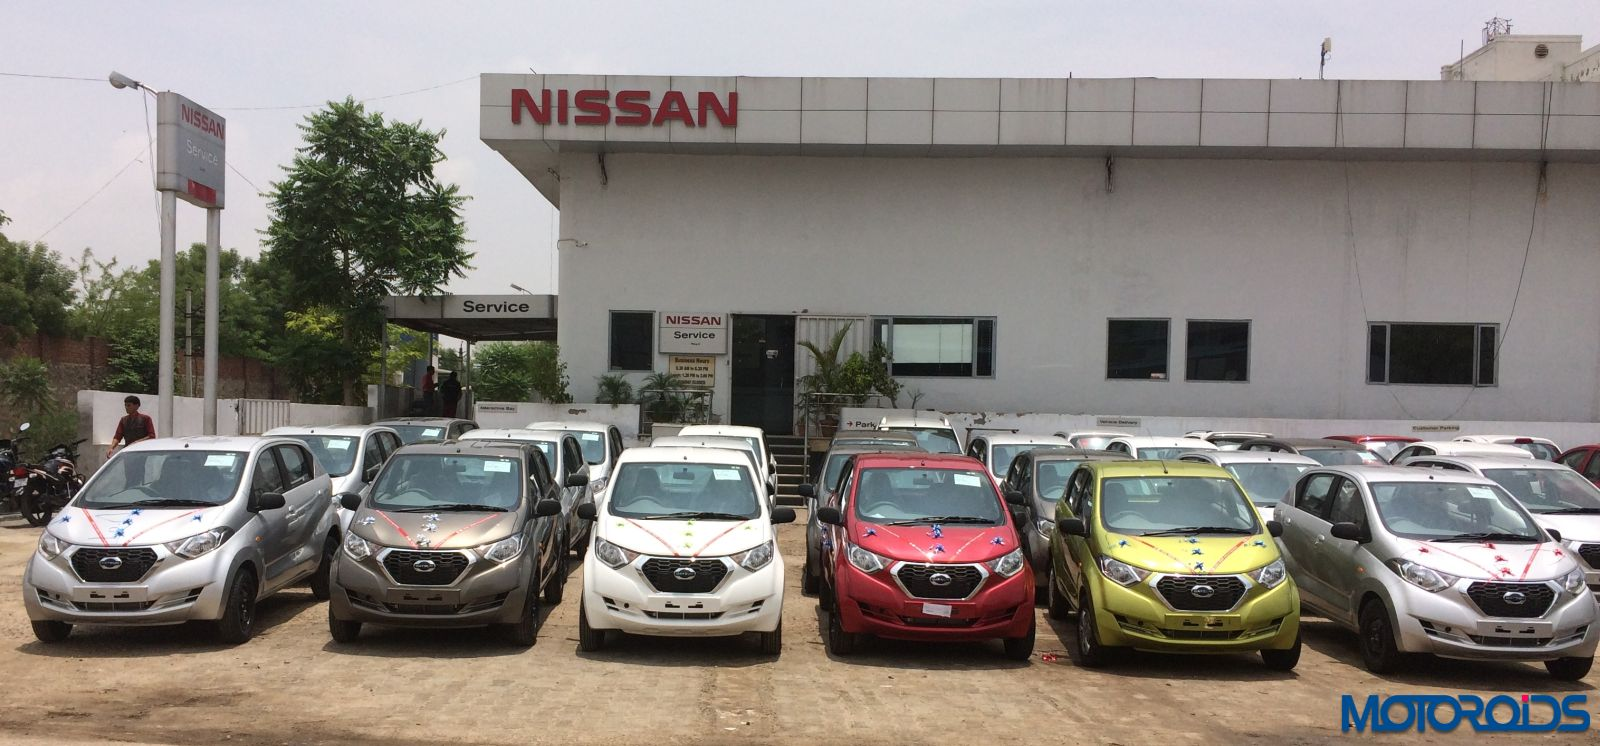 300 units of the Datsun redi-GO delivered in major cities of Rajasthan